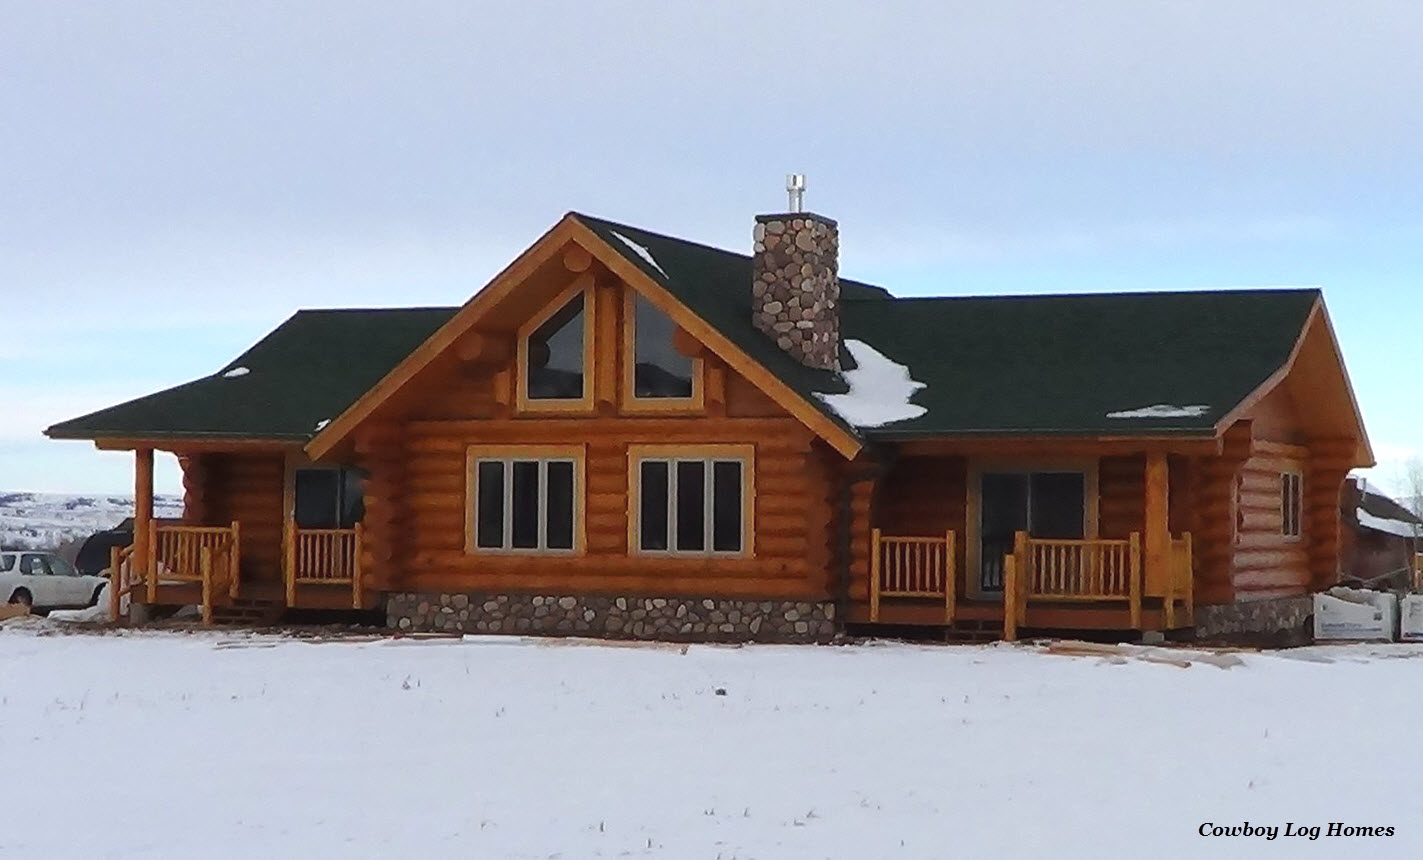 Breathtaking Post Beam Facebook Beam Homes Sand Creek Post Yellowstone Front Stonework Calculating Costs Beam Homes Part Cowboy Log Homes Sand Creek Post houzz-02 Sand Creek Post And Beam